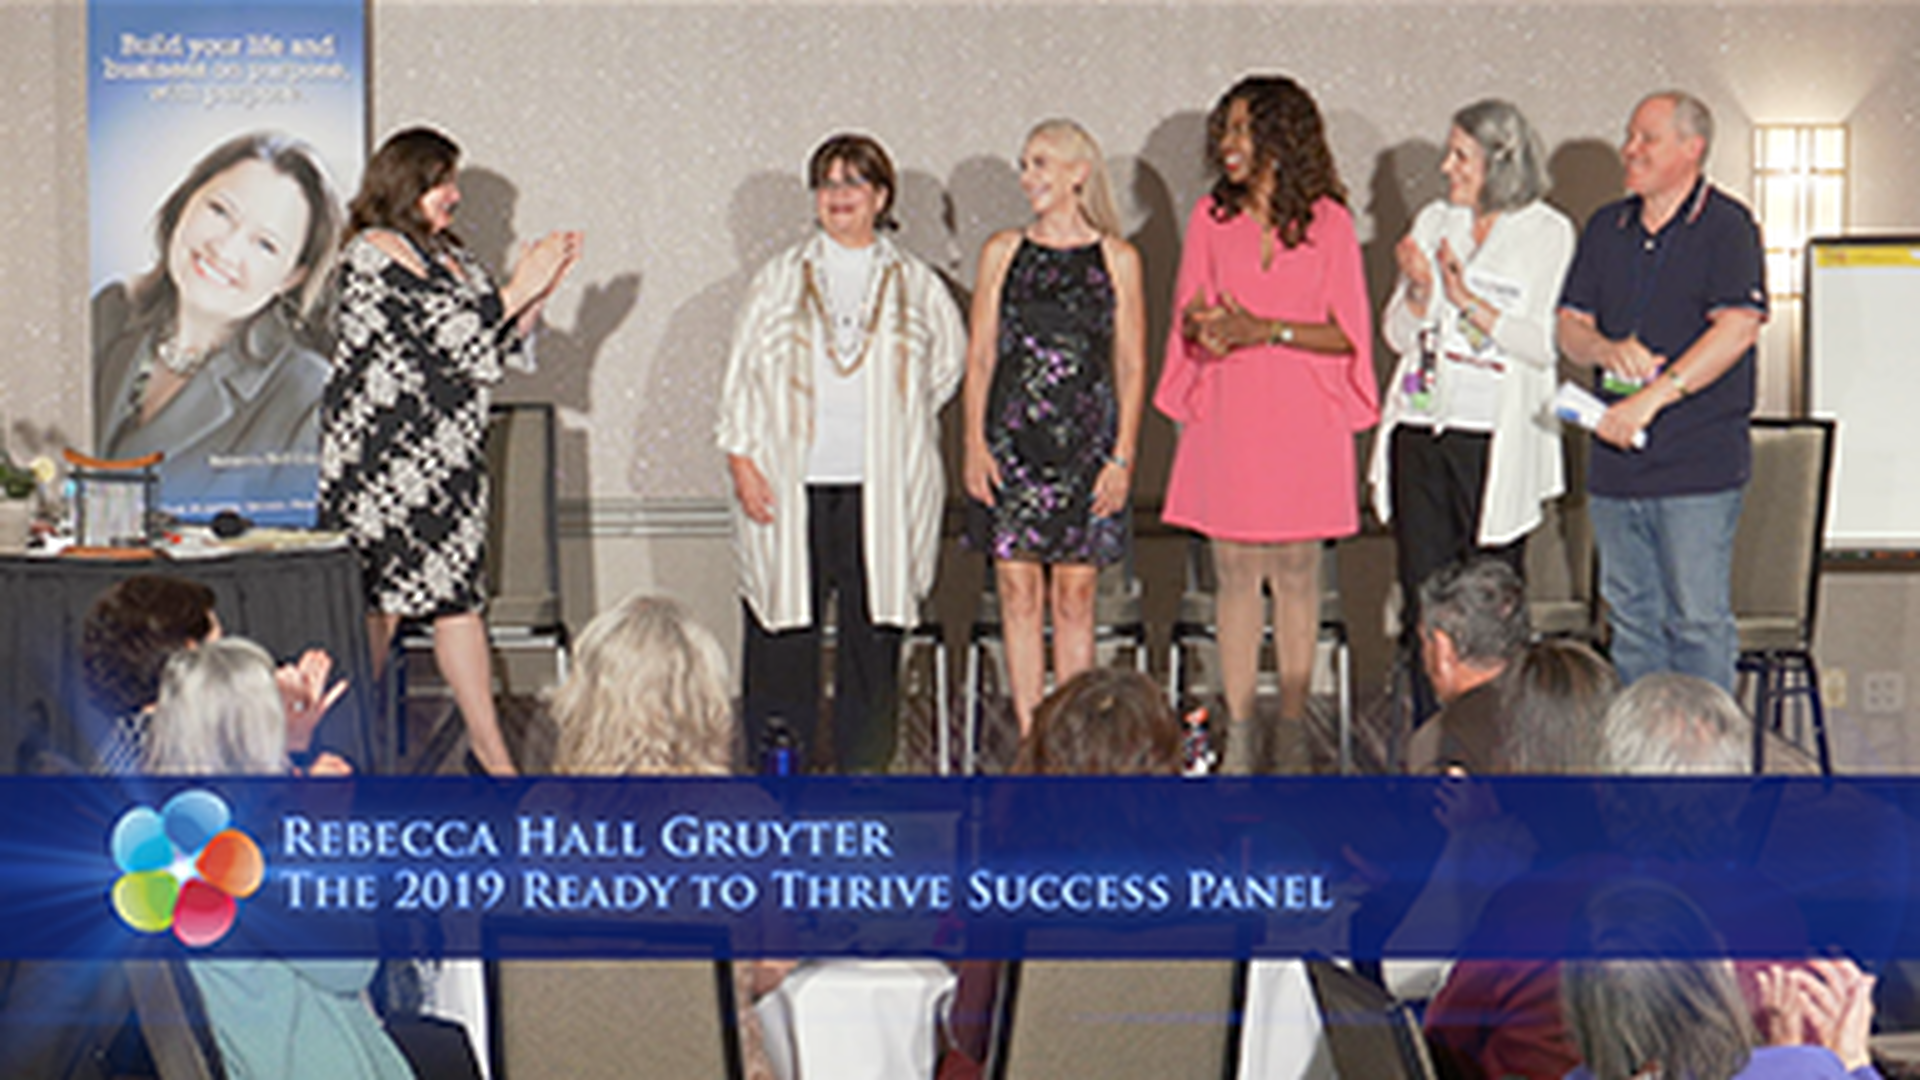 The 2019 Ready to Thrive Success Panel